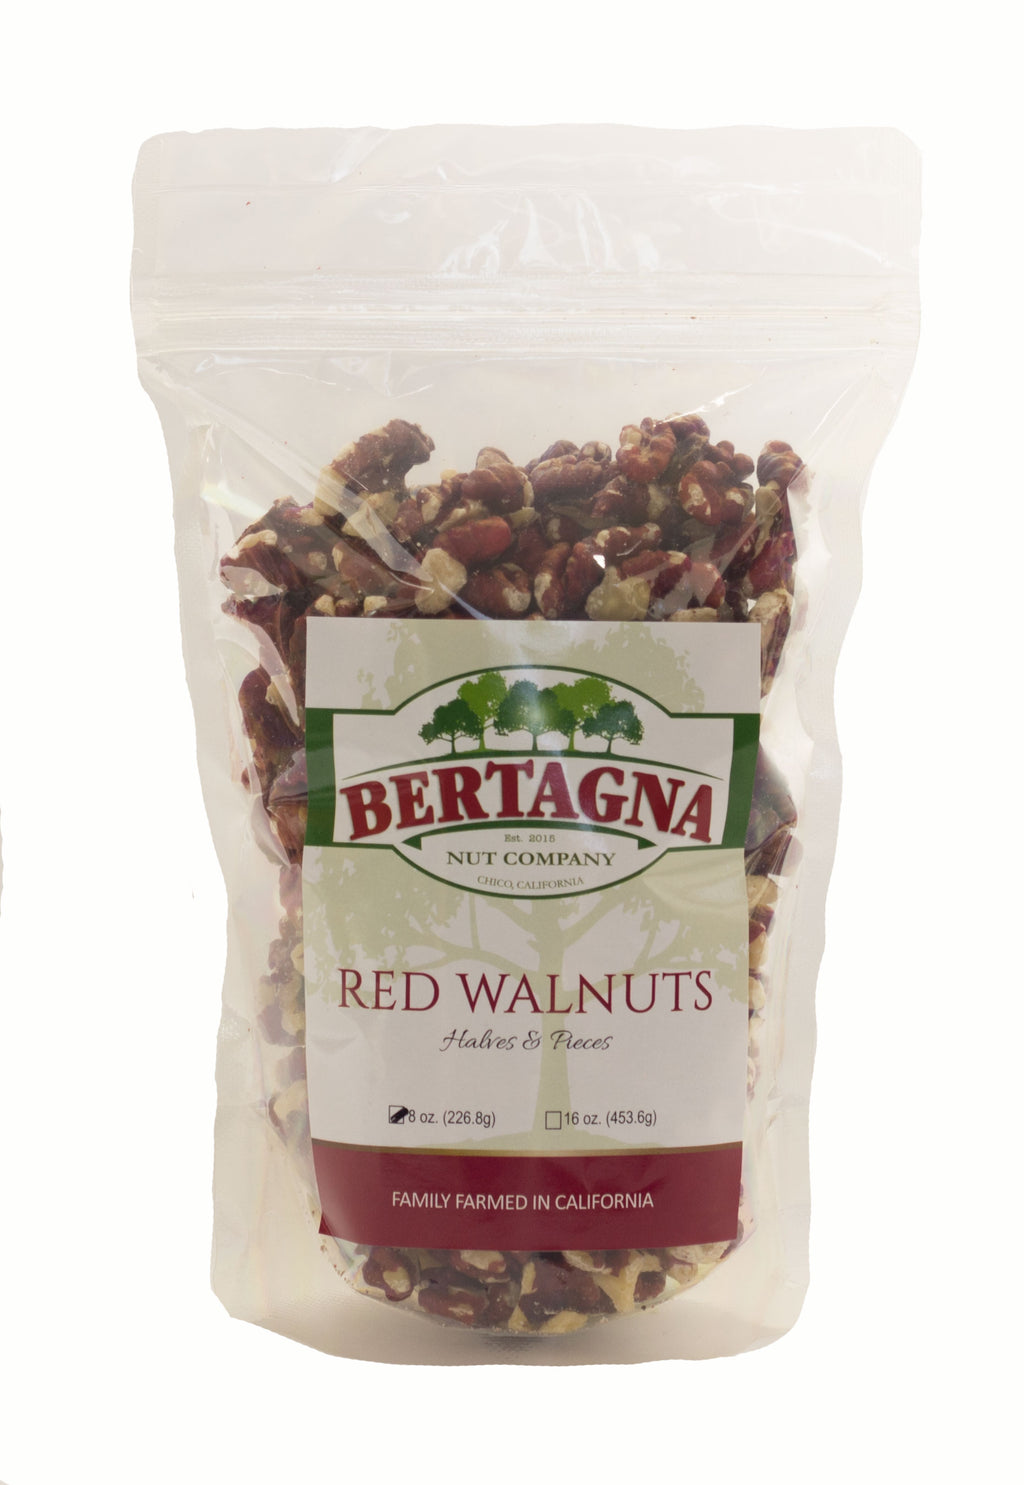 Bertagna California grown red walnuts